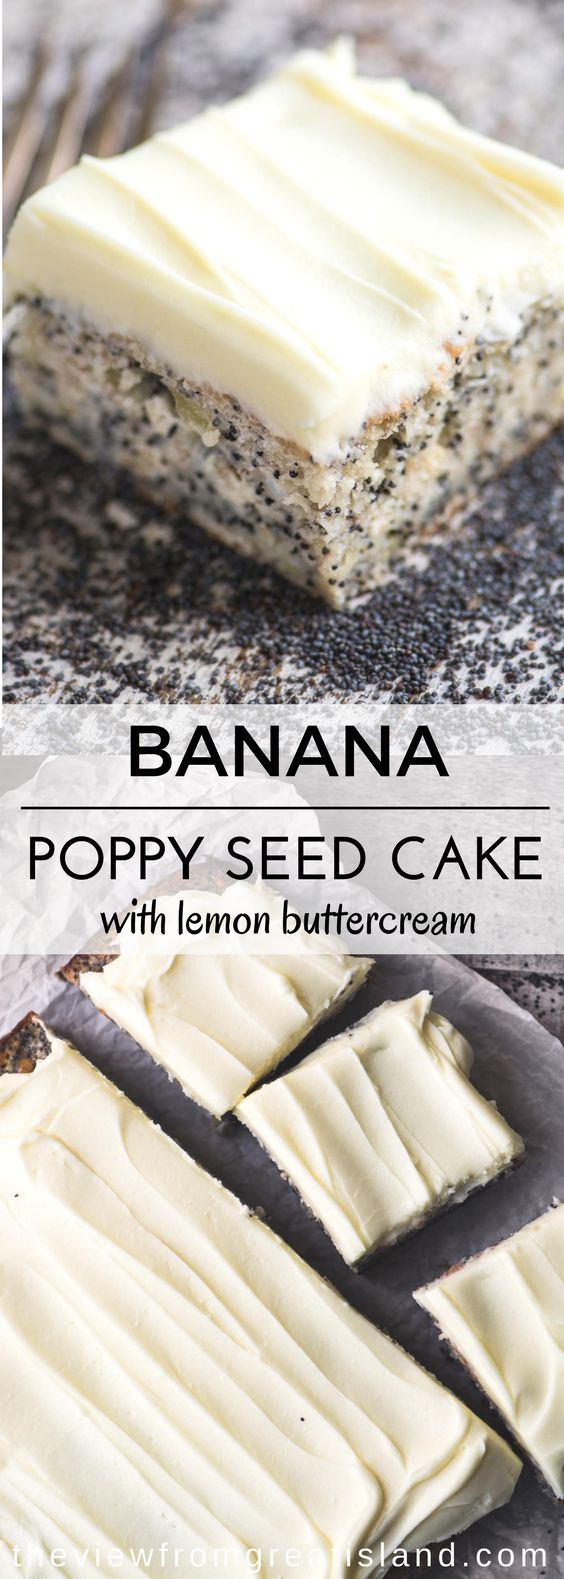 Banana Poppy Seed Cake with Lemon Buttercream ~ an easy snack cake made with bananas and poppy seeds, generously topped with a lemon frosting ~ you can whip up this easy one bowl cake in no time.